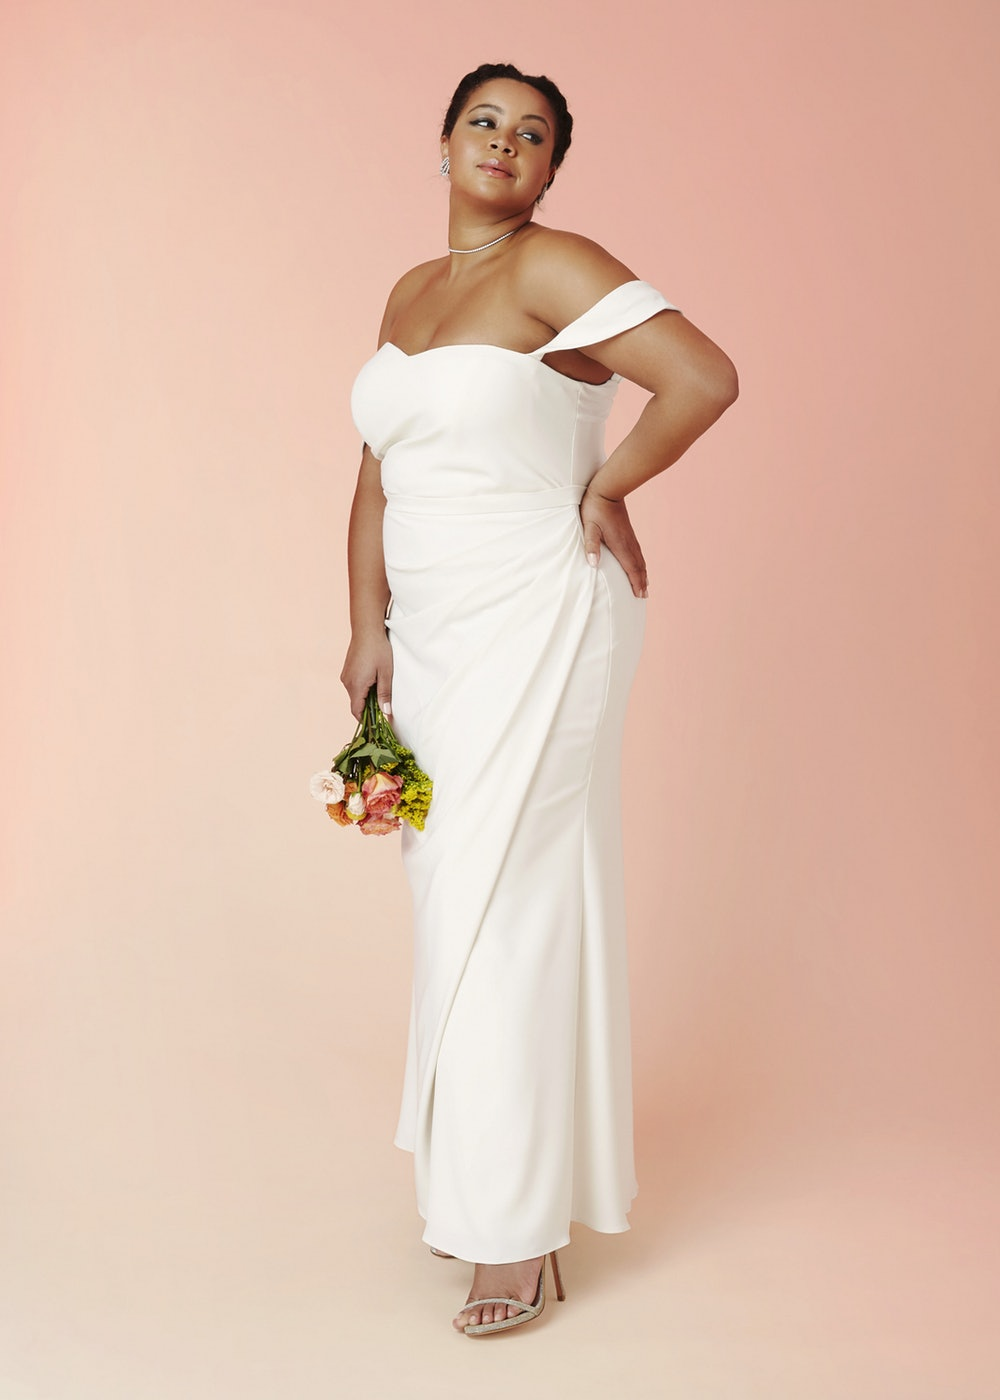 Plus size bride in a draped off-the-shoulder crepe sheath wedding dress